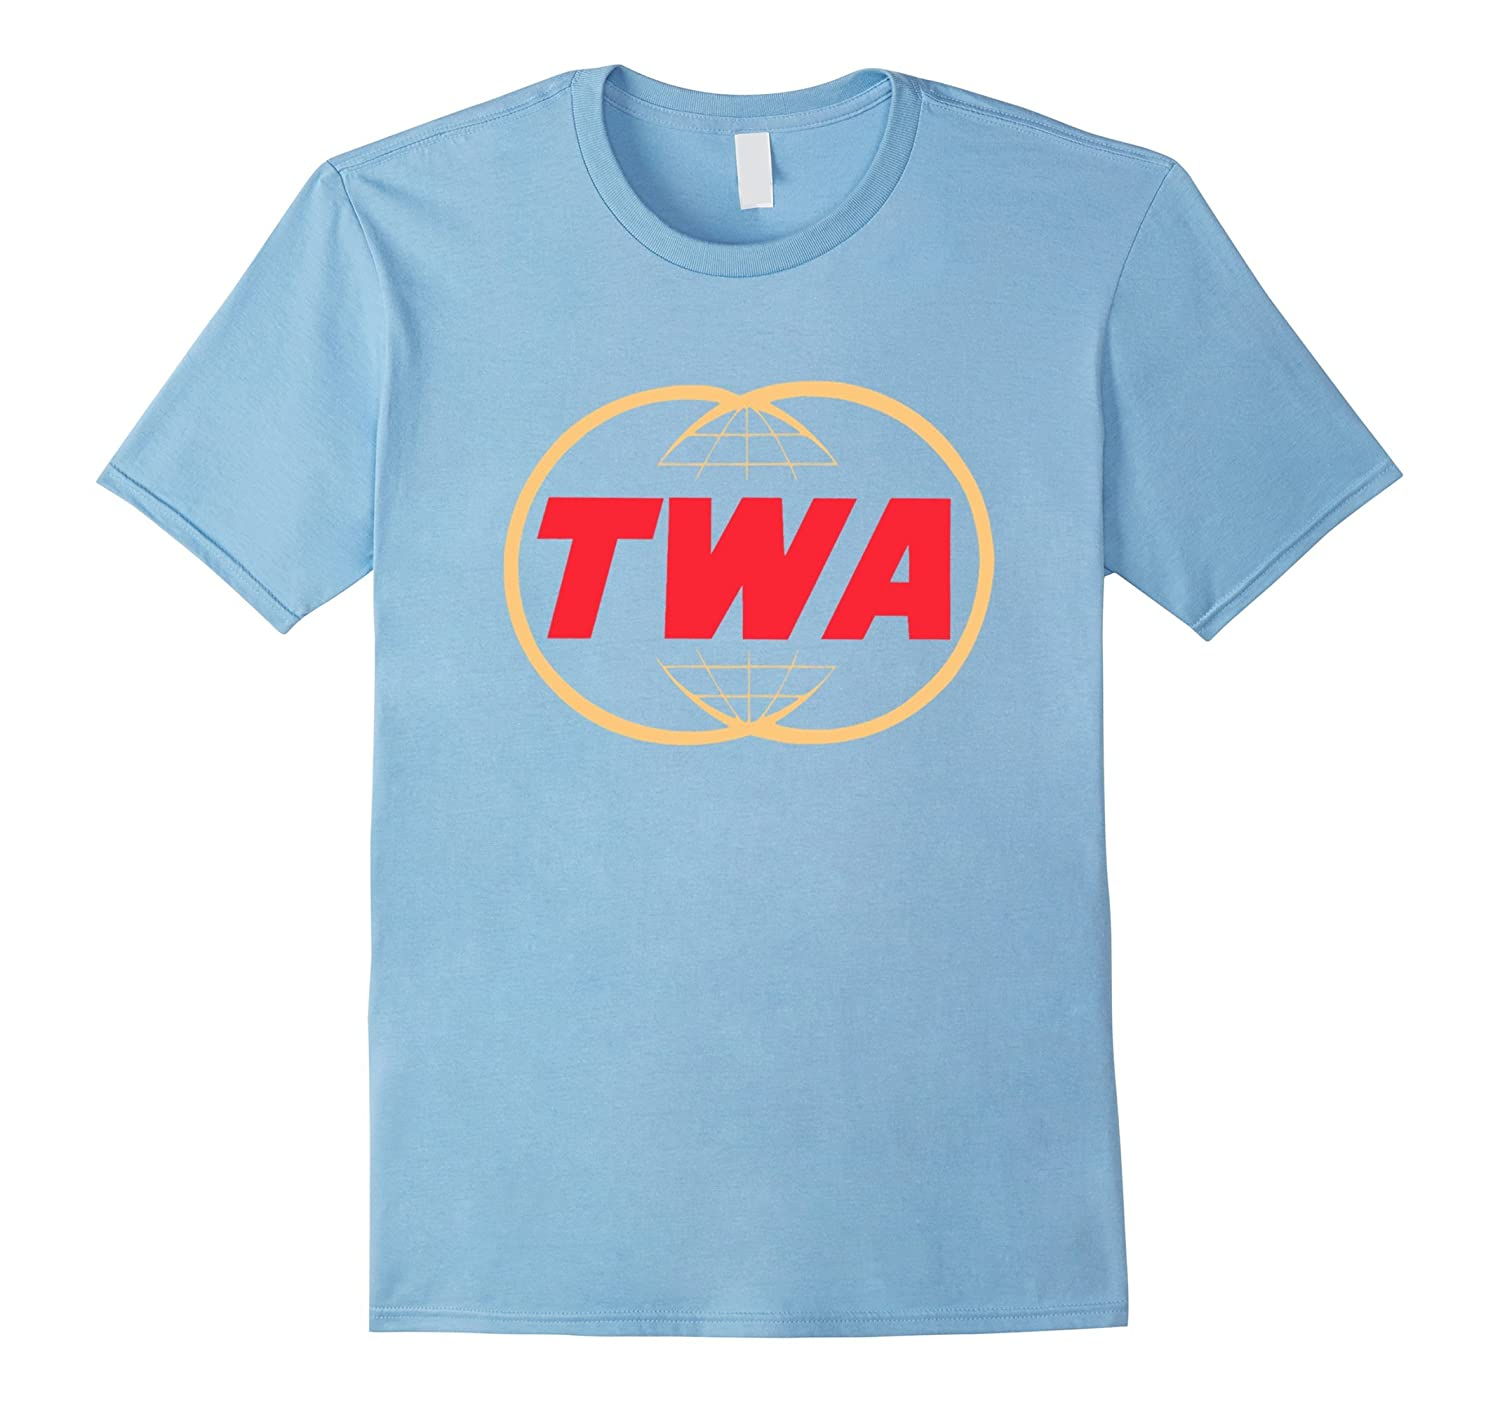 Vintage twa airline logo tee shirt td teedep for Old logo t shirts